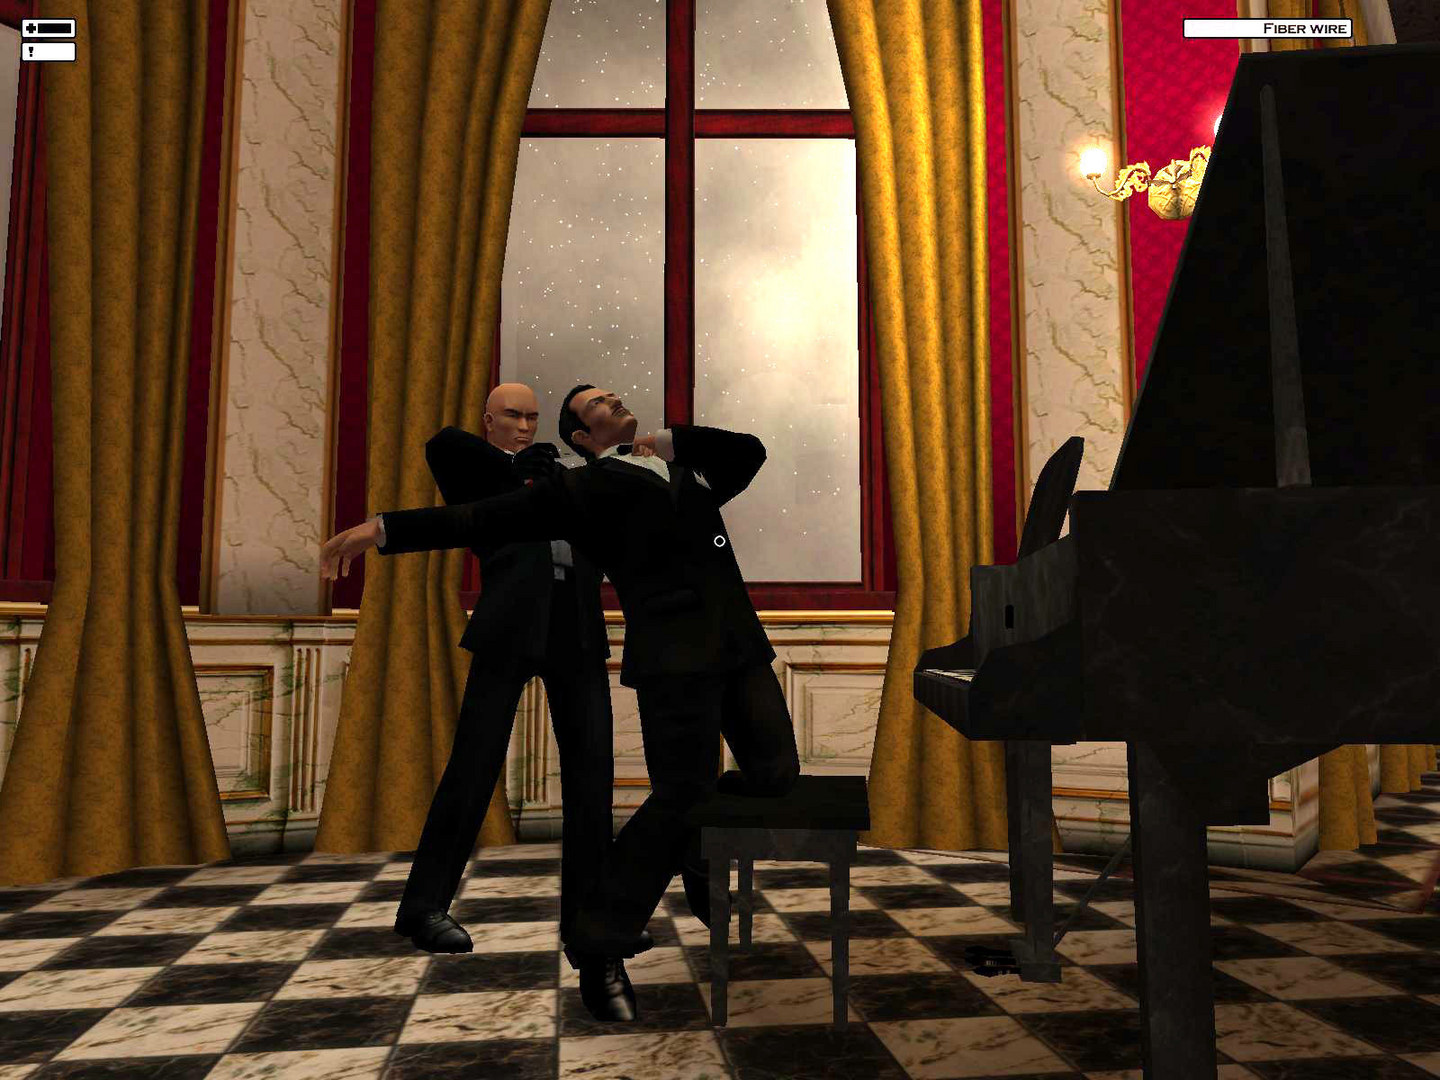 Hitman 2 Silent Assassin Download For Free